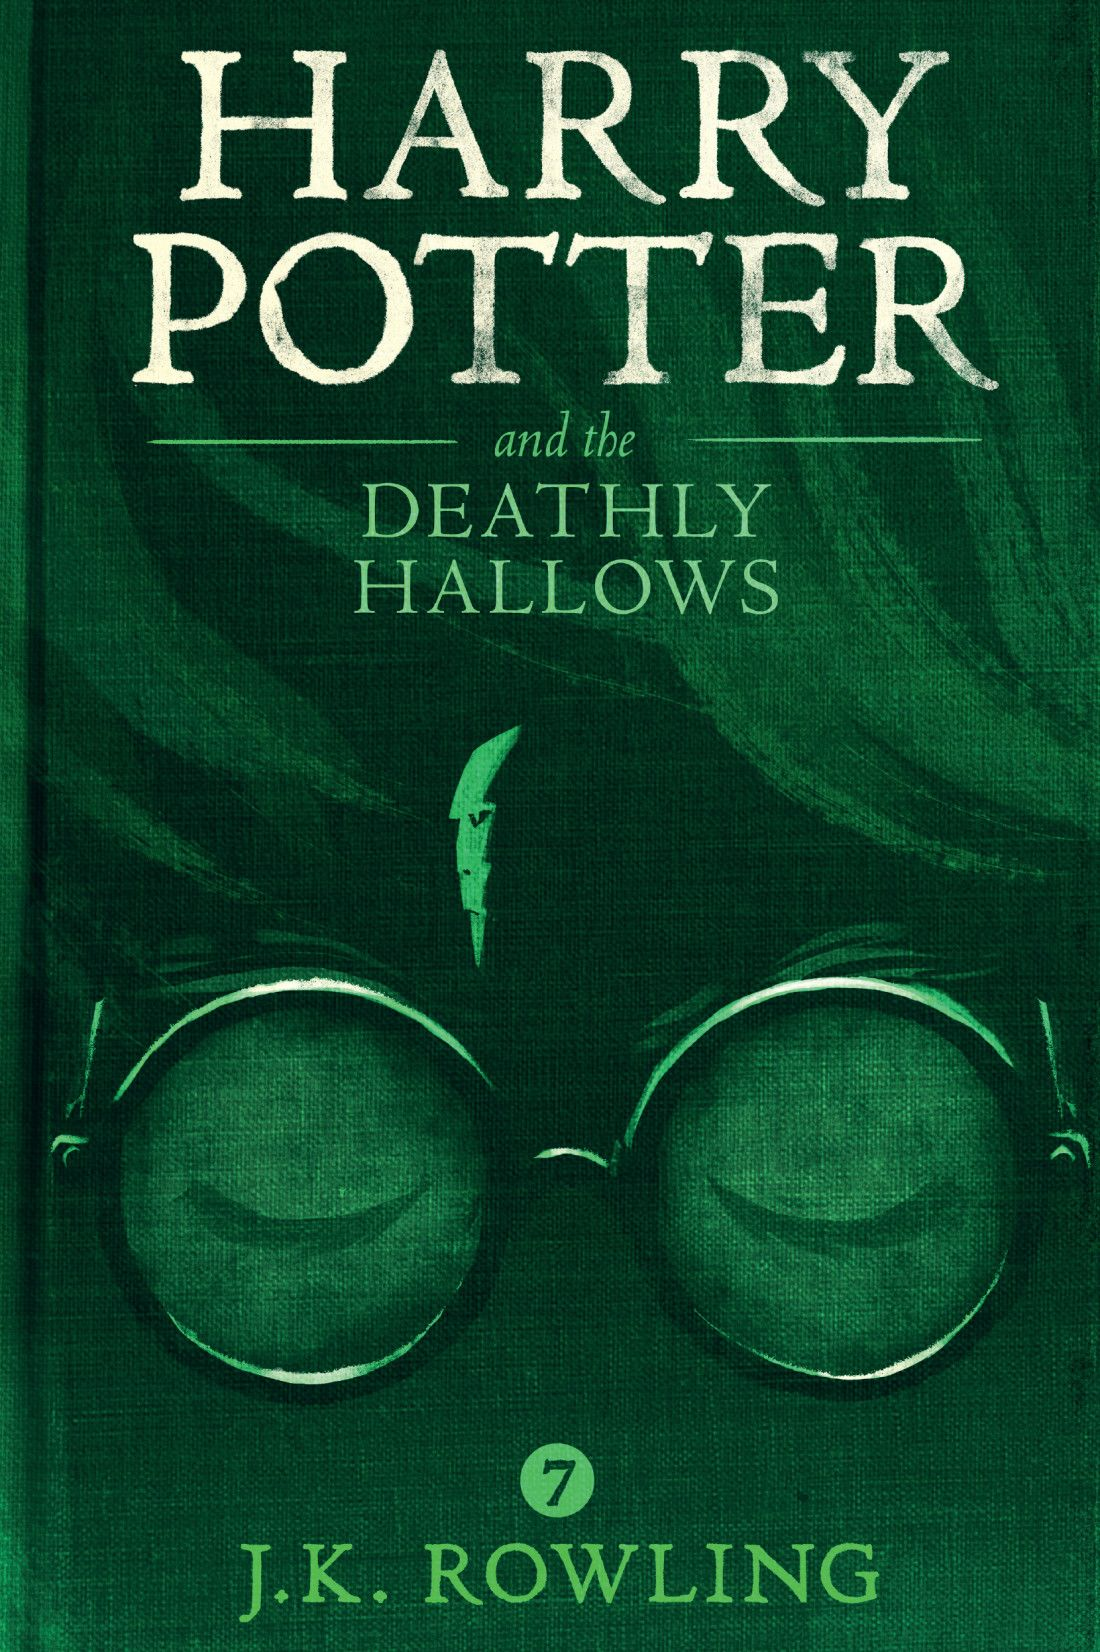 Harry Potter Book Cover Image ~ Harry potter covers designed by olly moss for pottermore